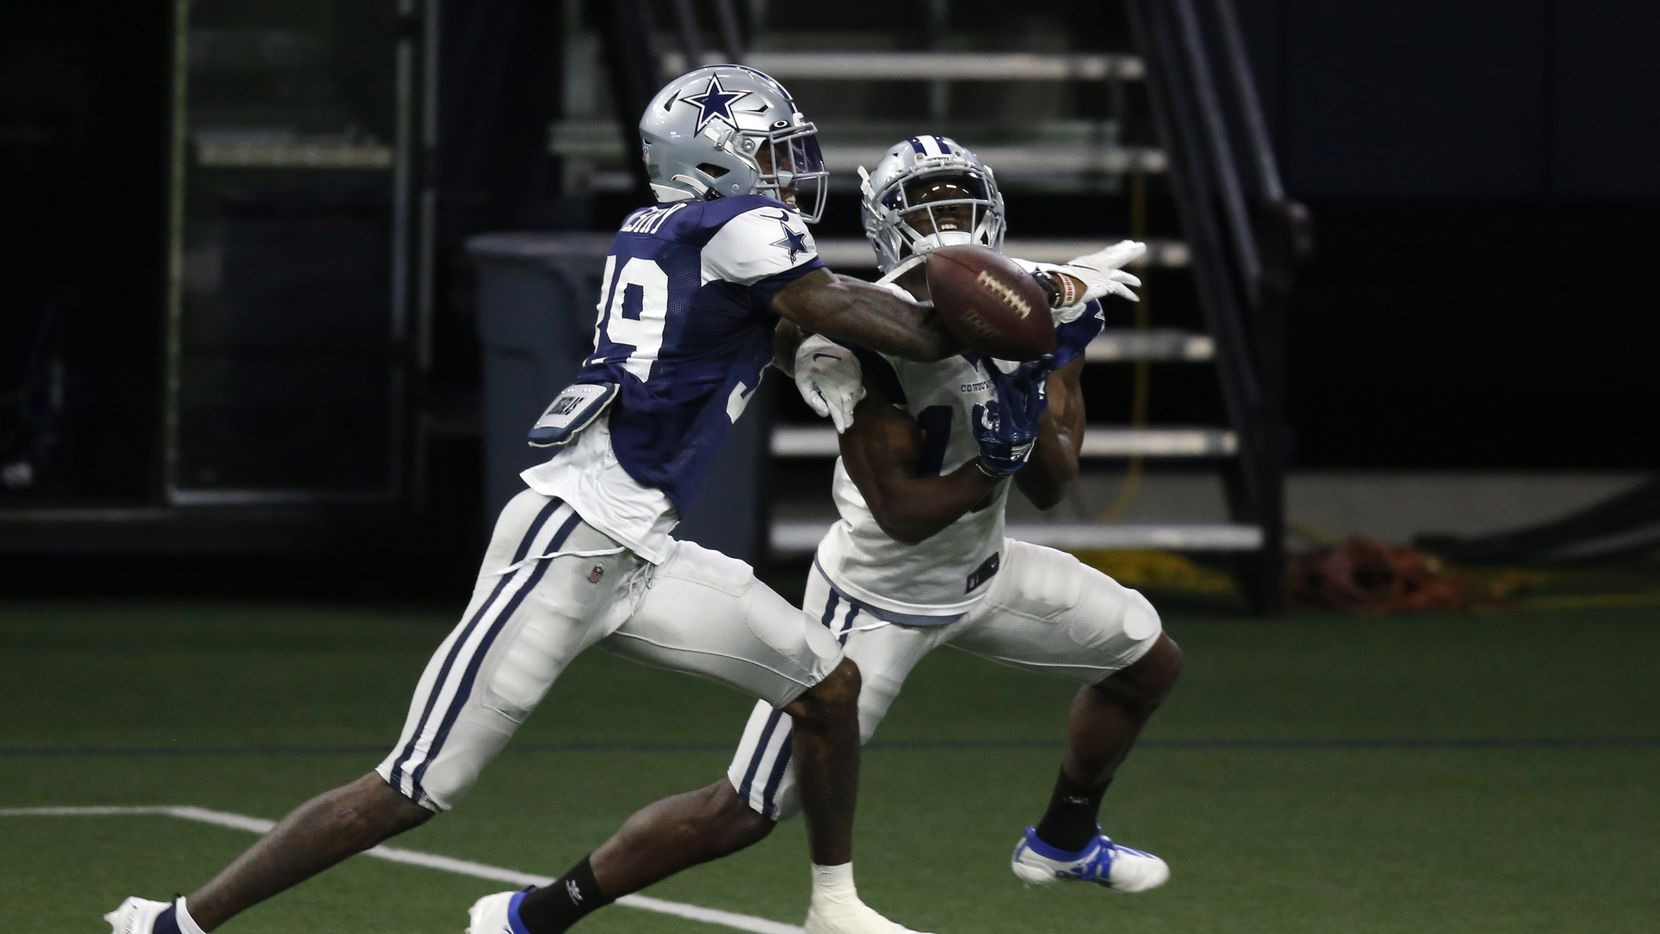 FILE - Cowboys cornerback Chris Westry (39) deflects a pass intended for wide receiver Michael Gallup (13) during training camp at The Star in Frisco on Friday, Aug. 28, 2020.